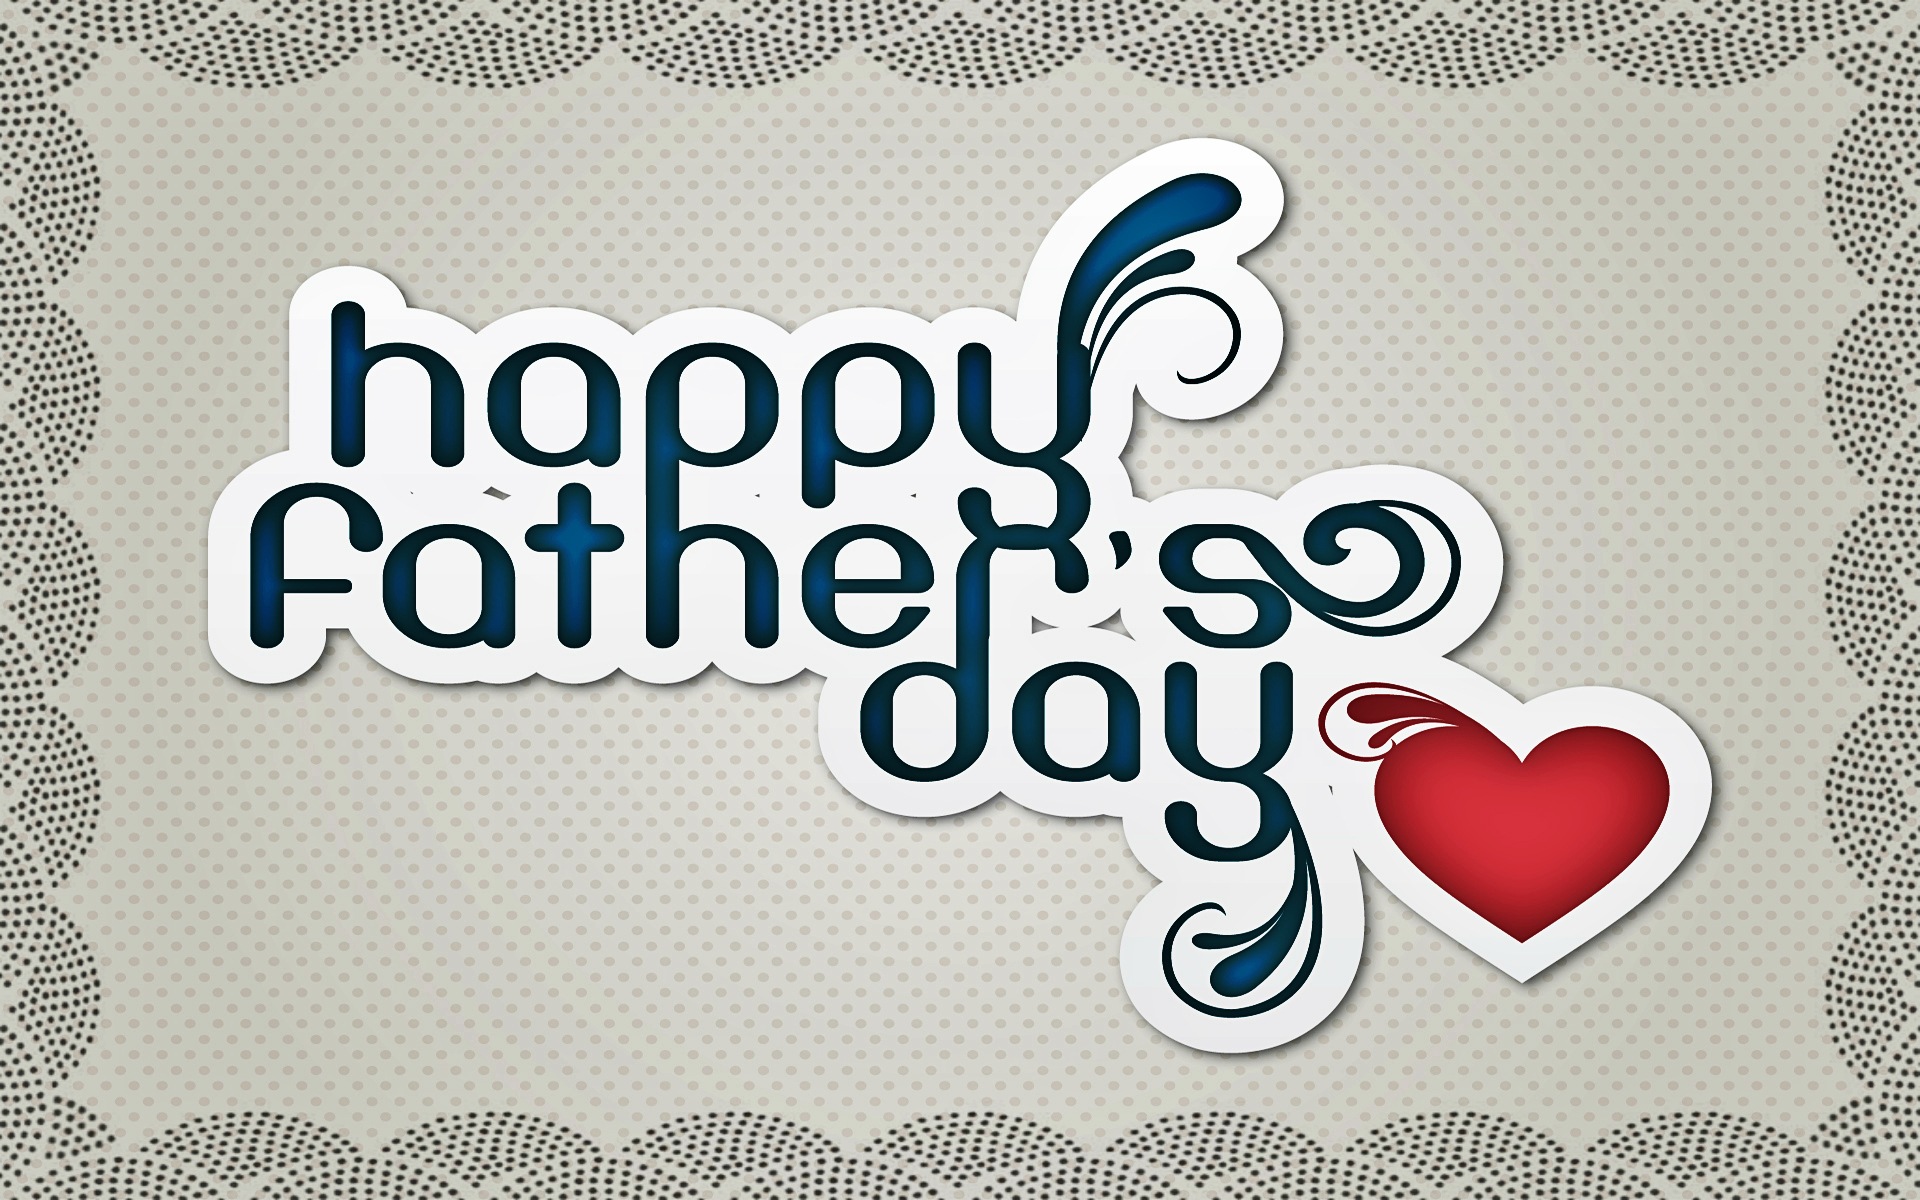 happy fathersday 2016 HD wallpapers images pictures cover photos (2)